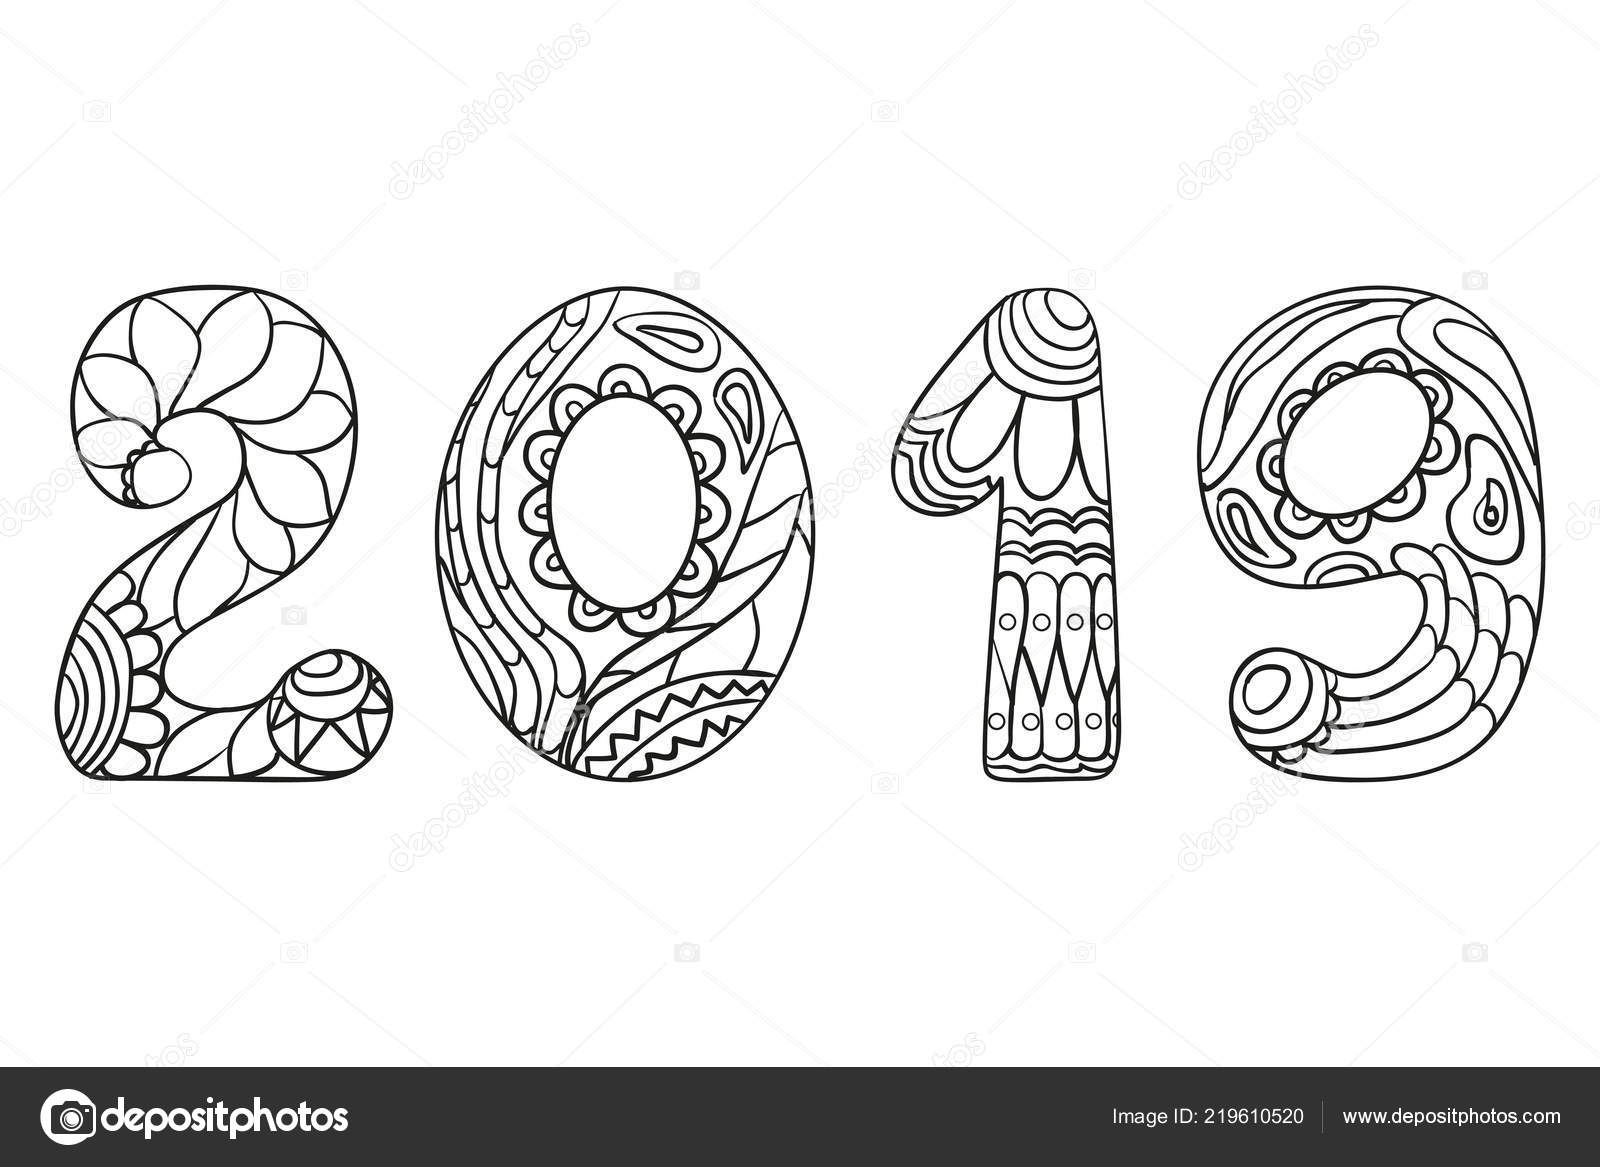 happy new year 2019 hand drawn numbers abstract patterns isolation stock vector